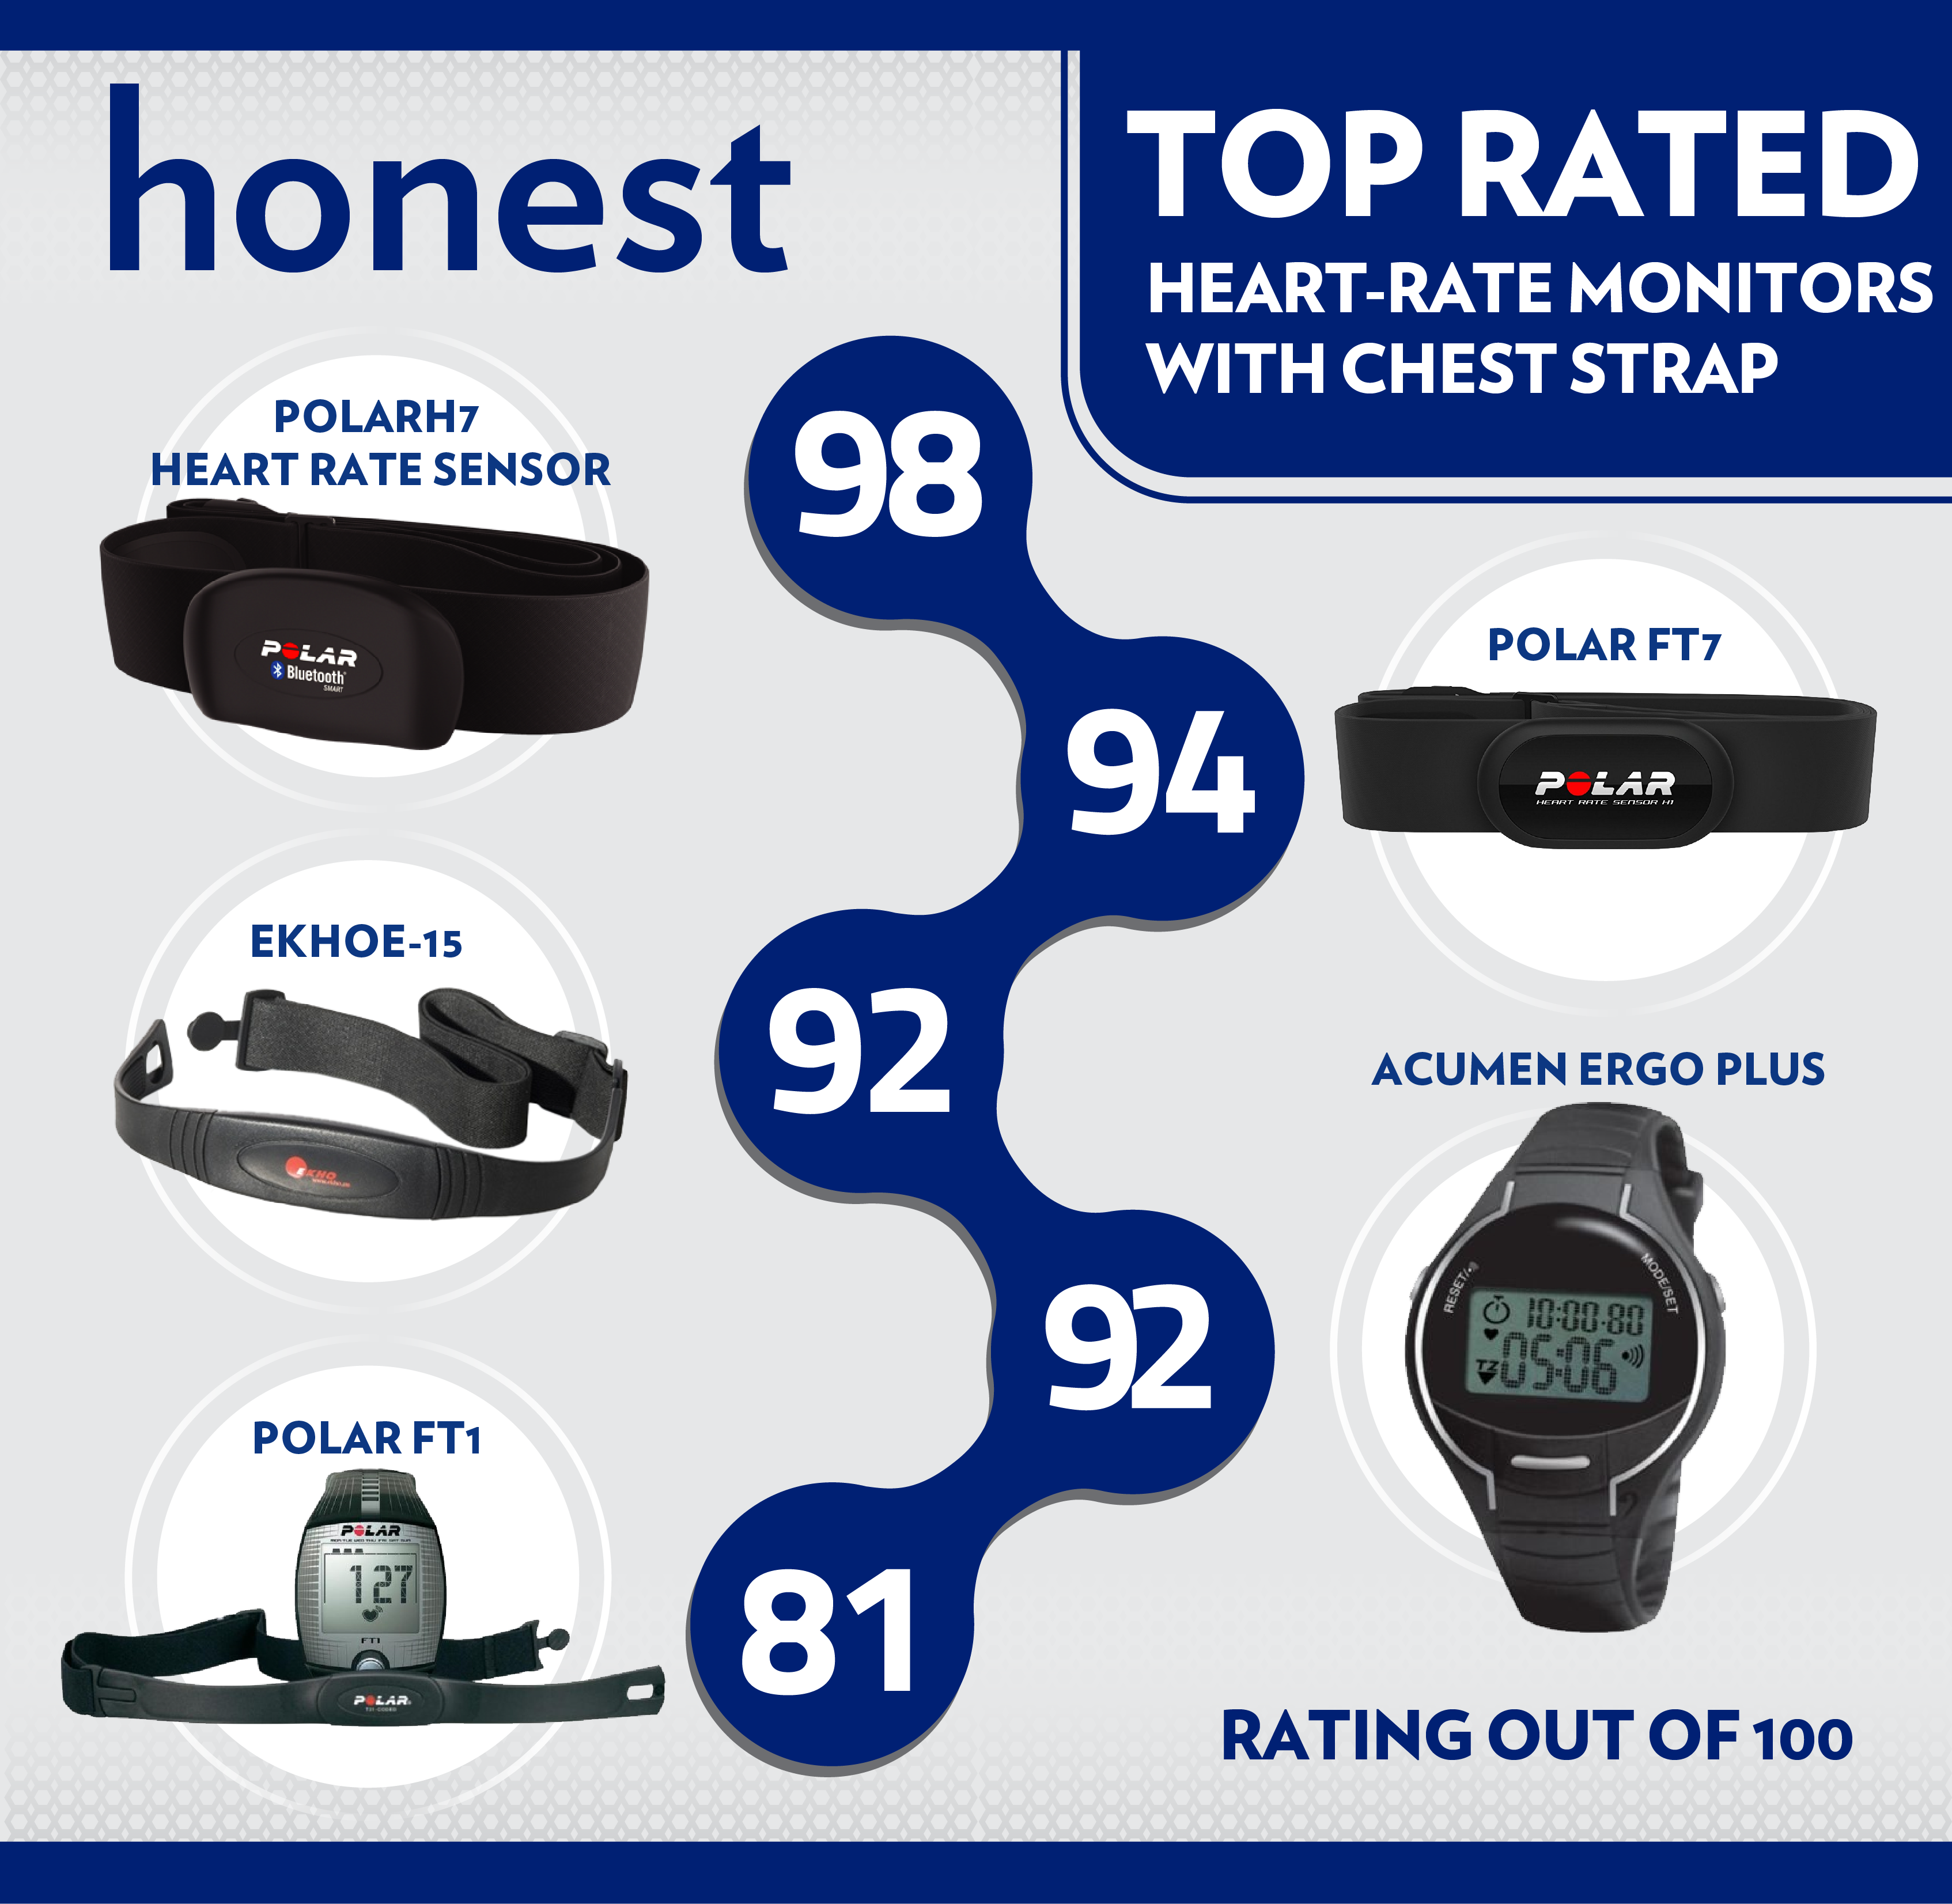 Top Rated Heart-Rate Monitors With Chest Straps 2018